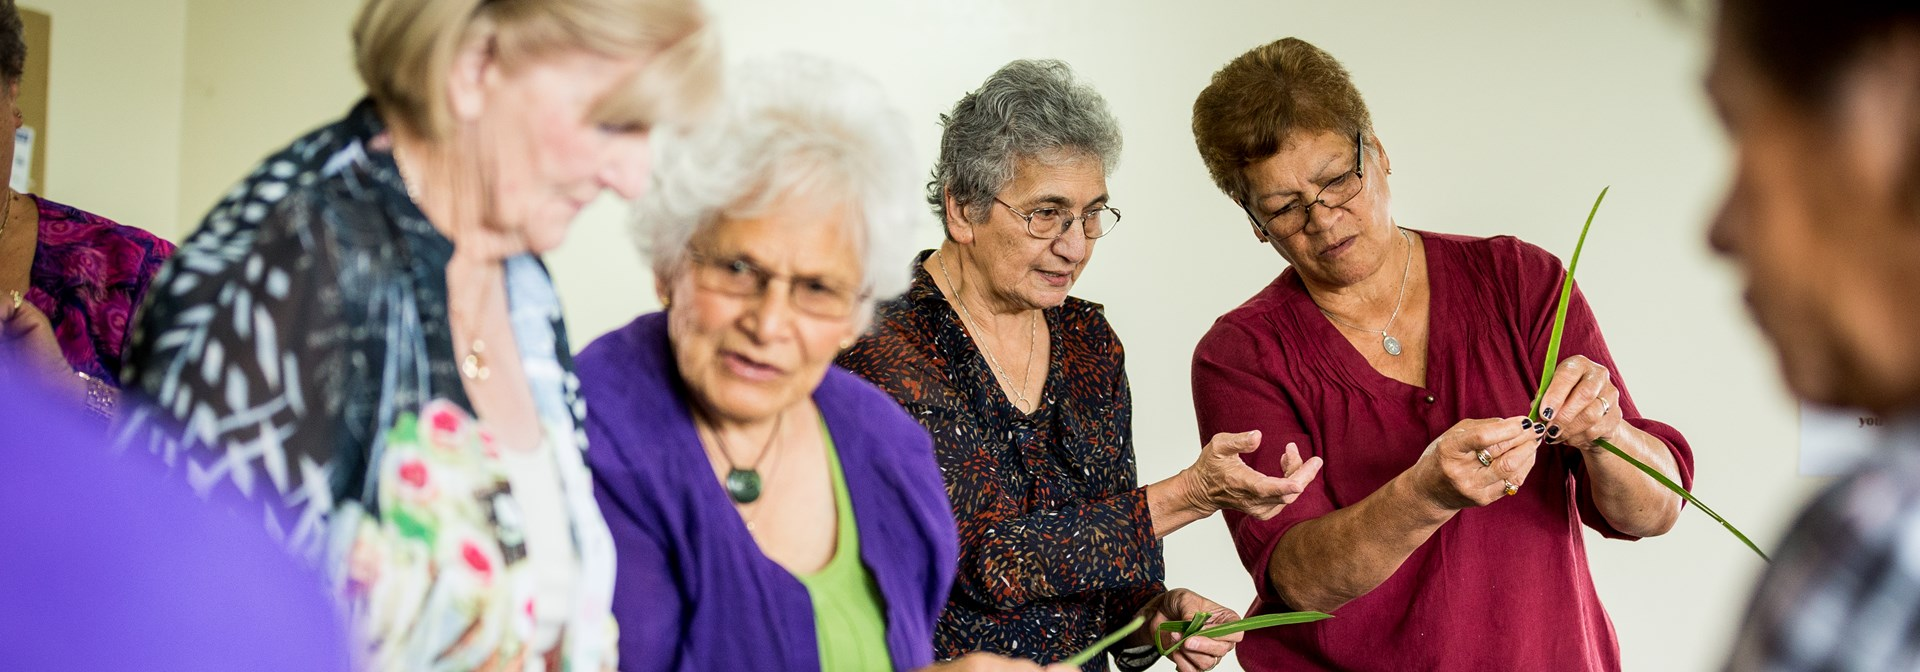 The Selwyn Foundations charitable outreach supports elders who are vulnerable or in need